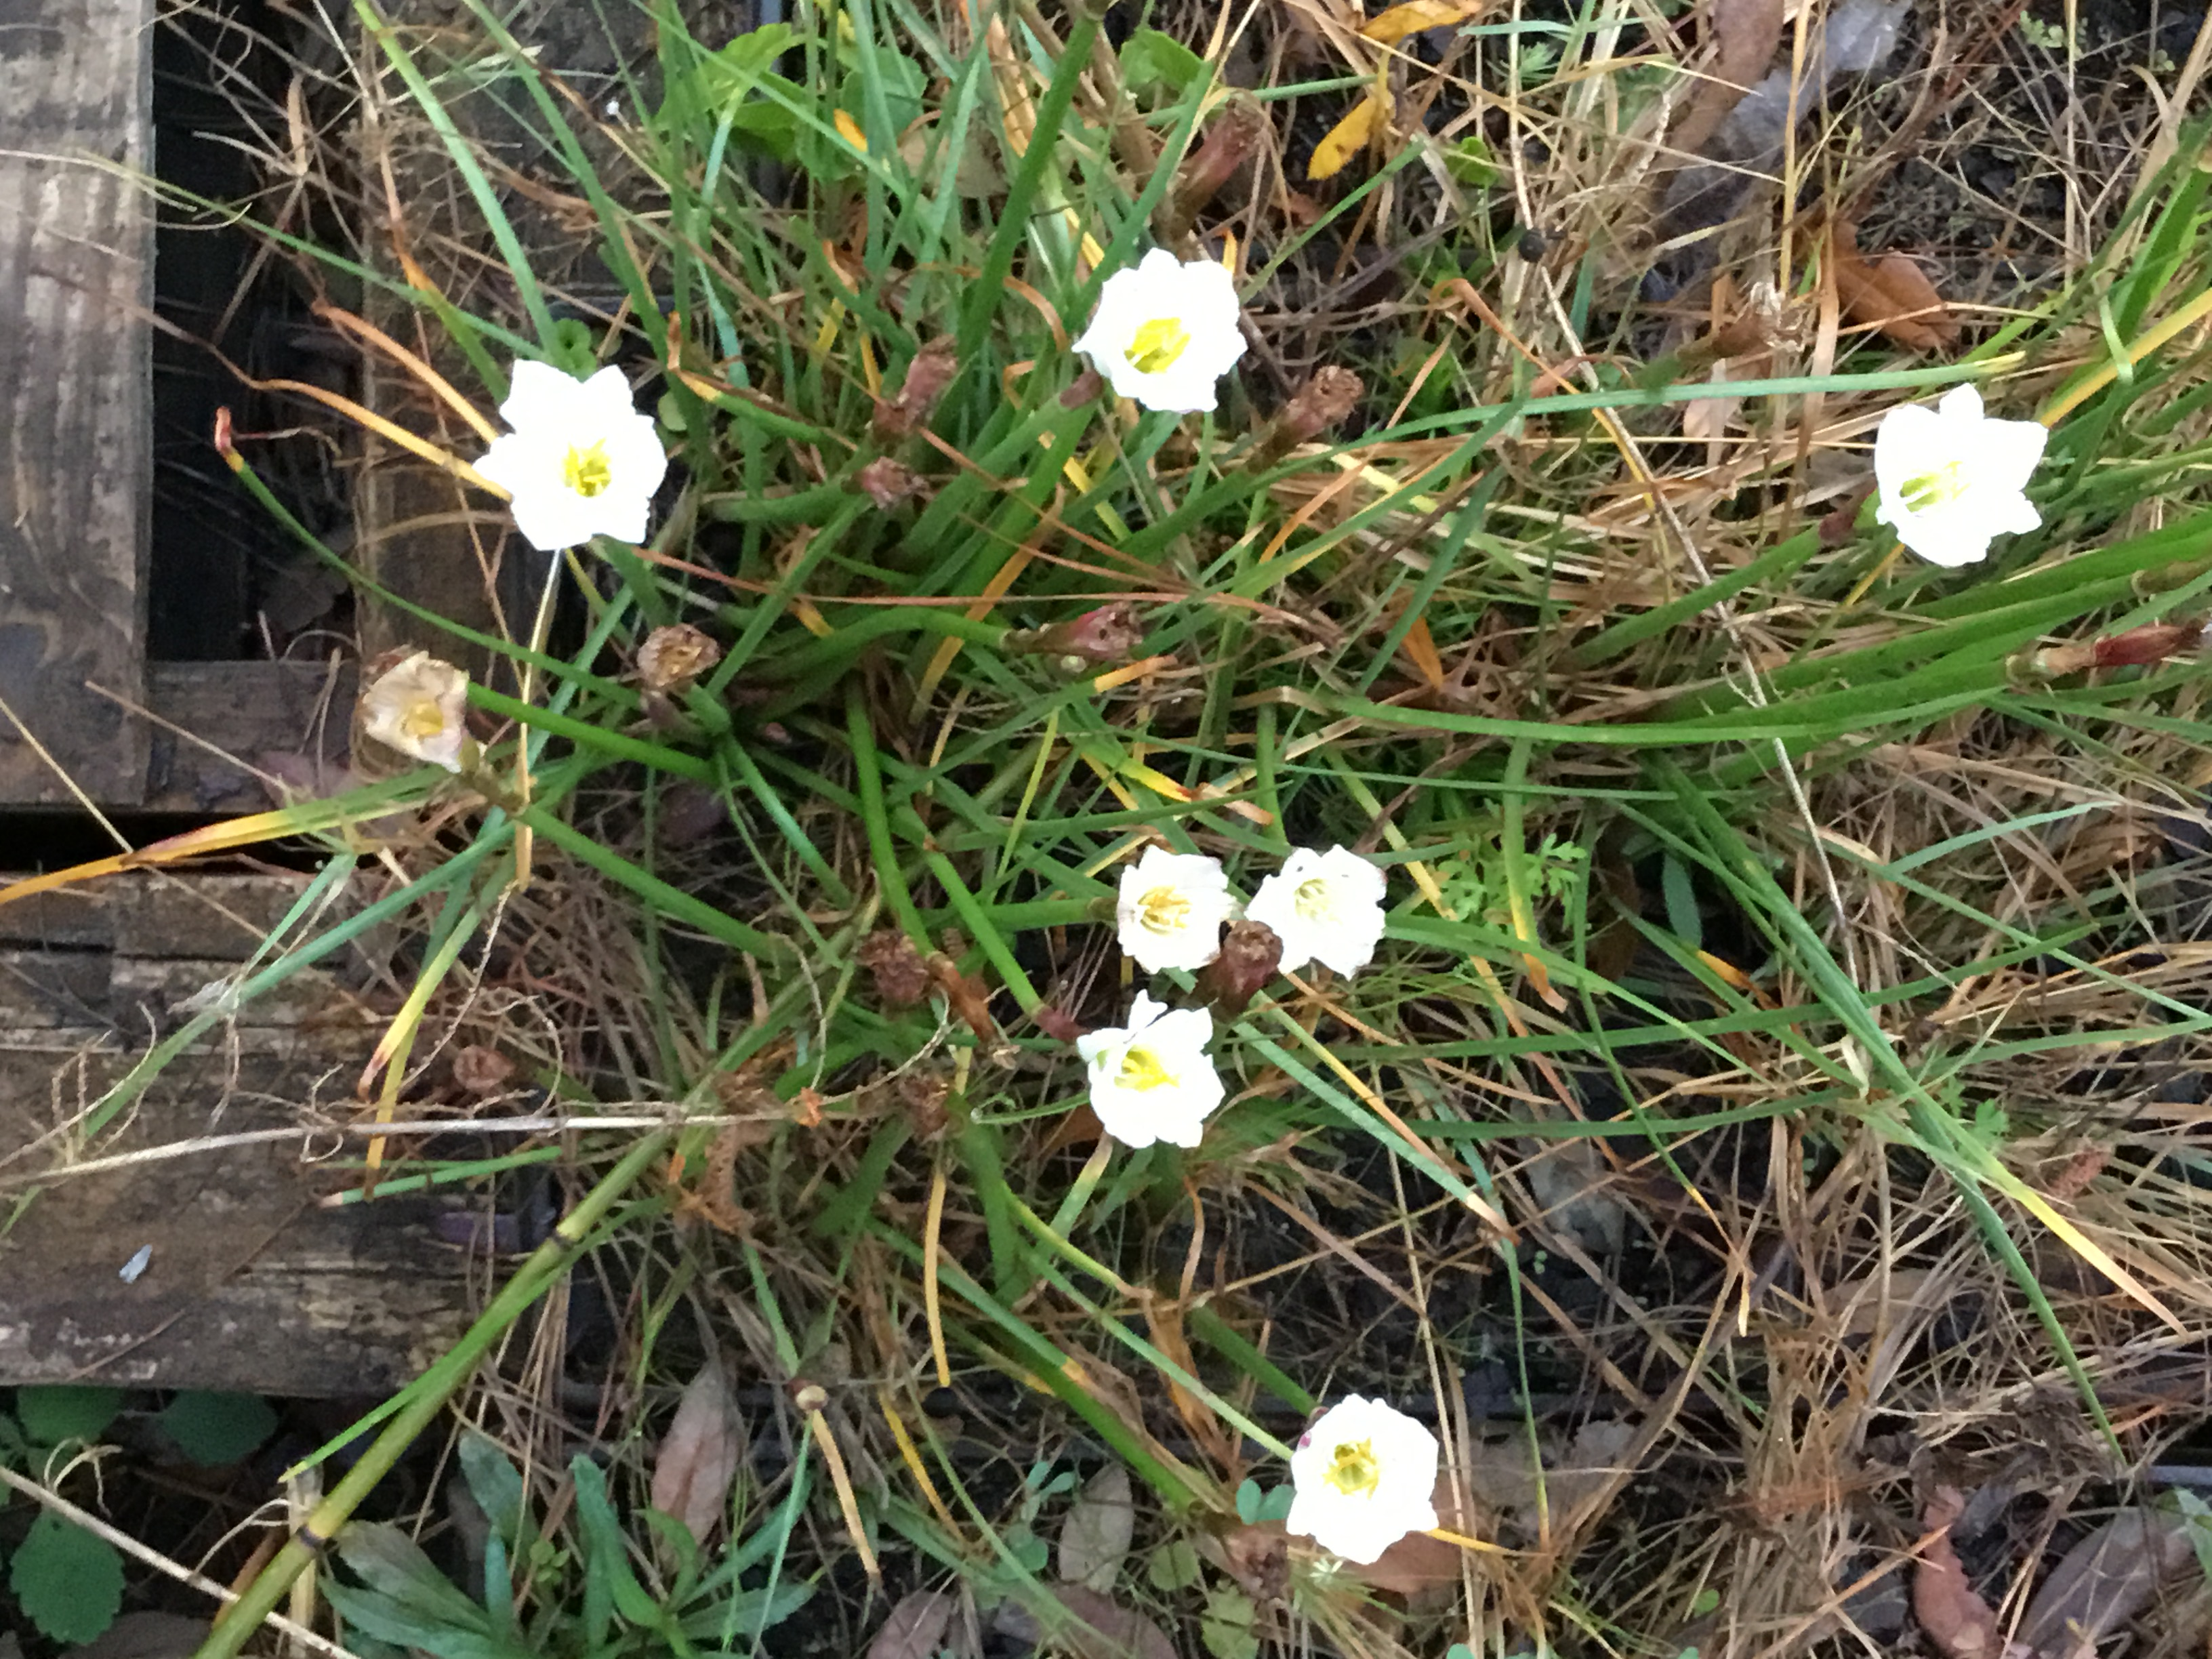 Image Related To Zephyranthes simpsonii (Simpson's Rainlilies)